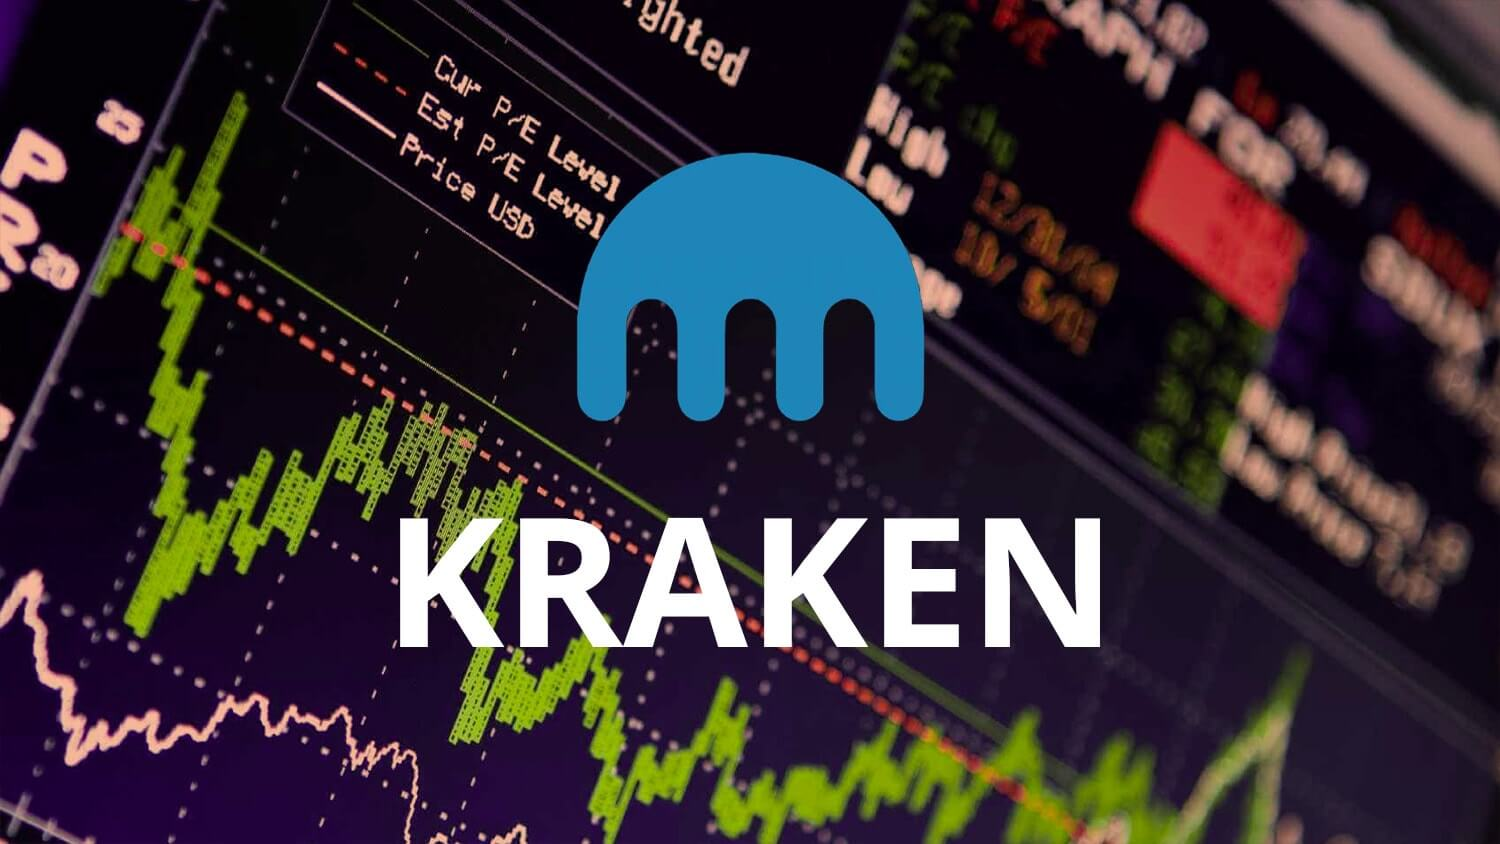 Kraken Crypto Exchange to Add Support for BAT and WAVES